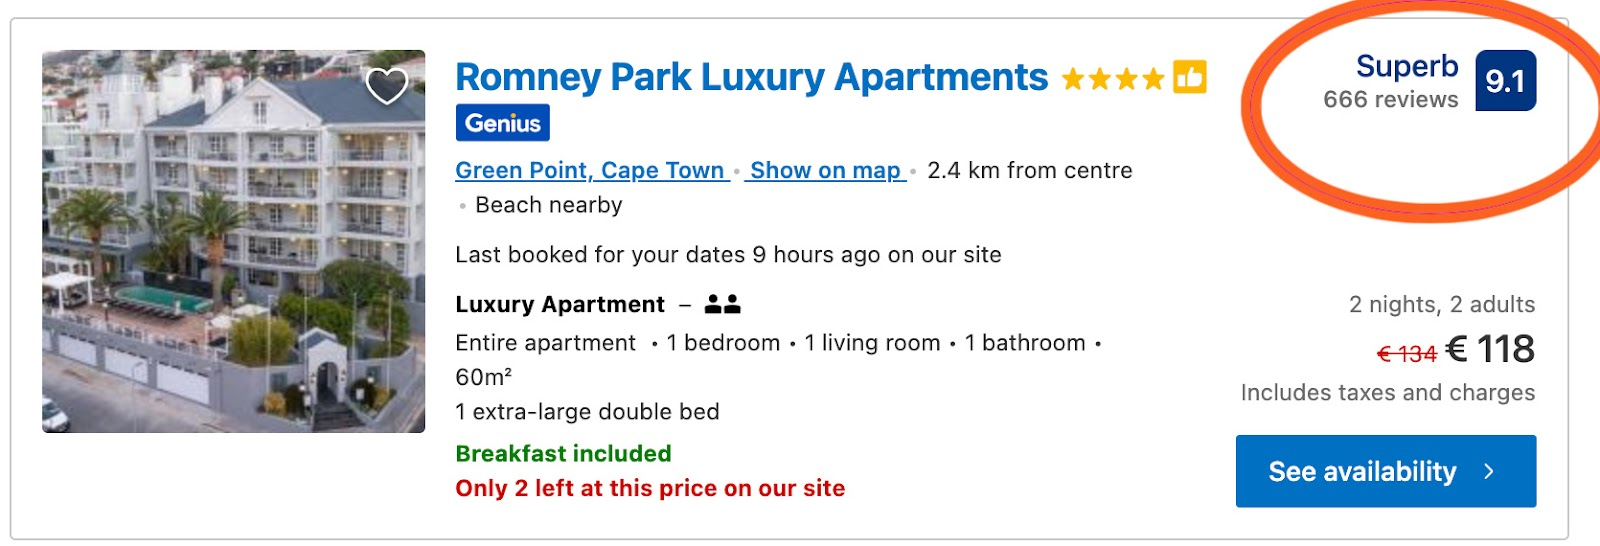 New vacation rental listings need a rating: